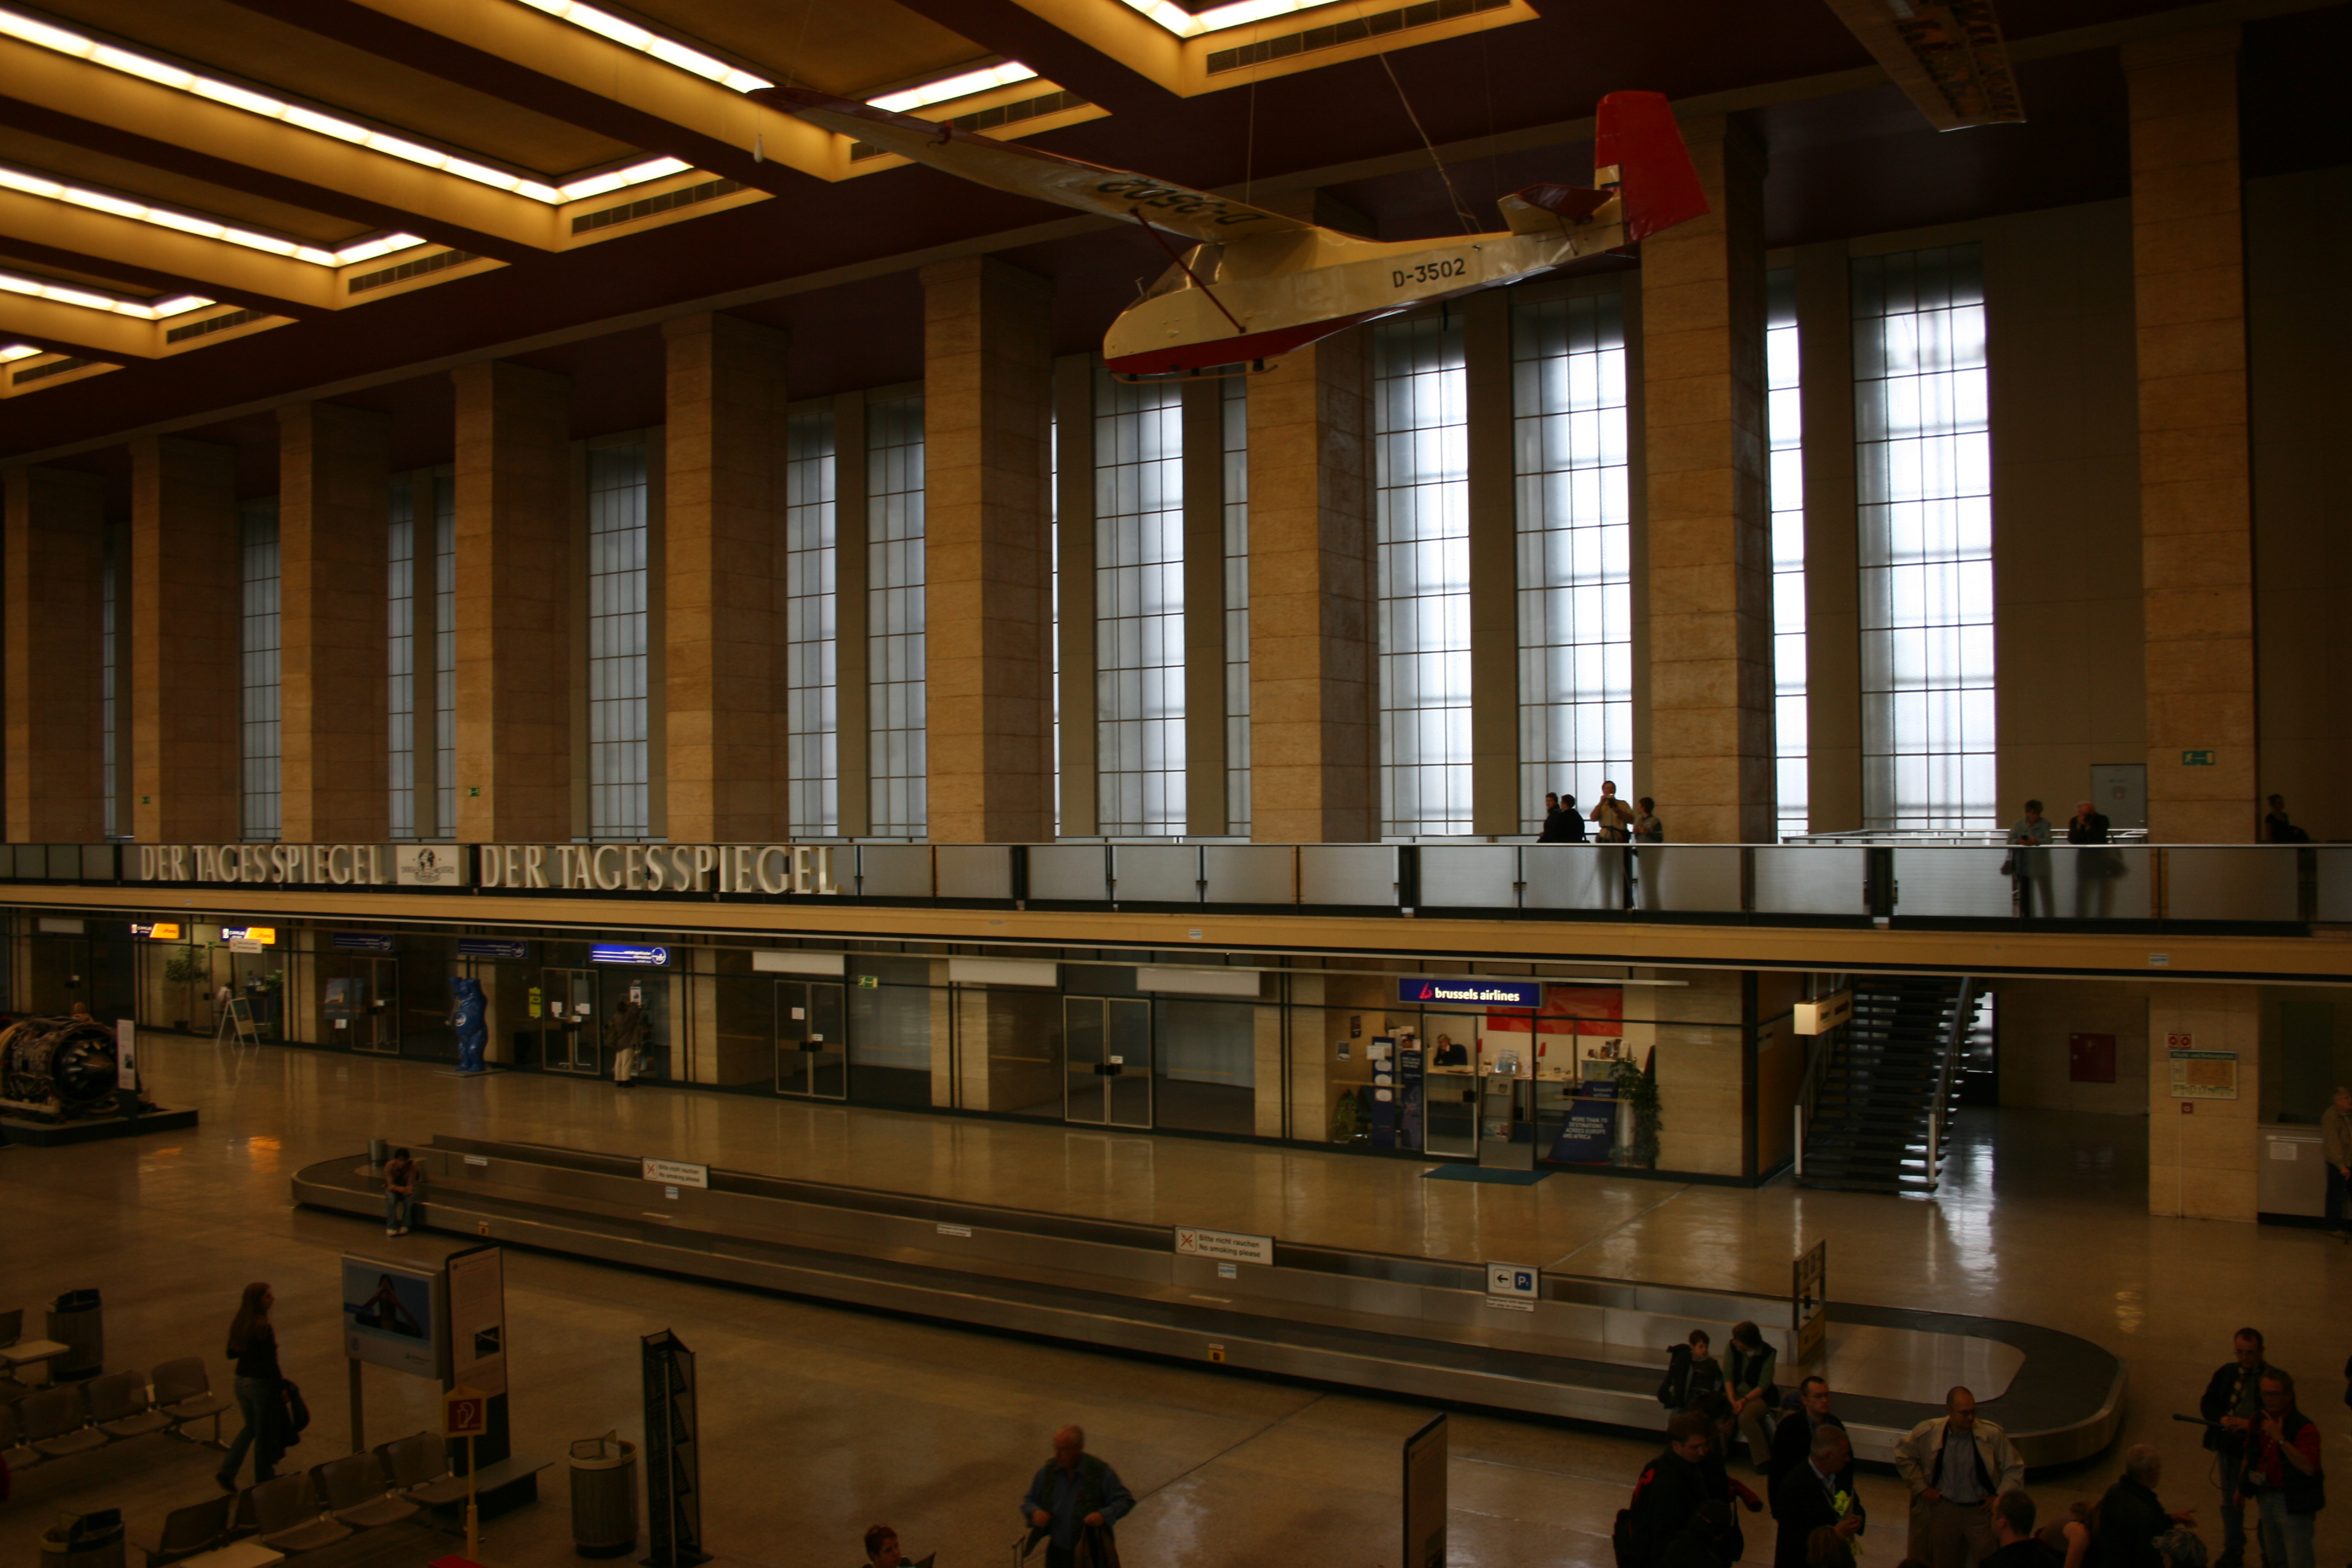 main hall, during the rush hour